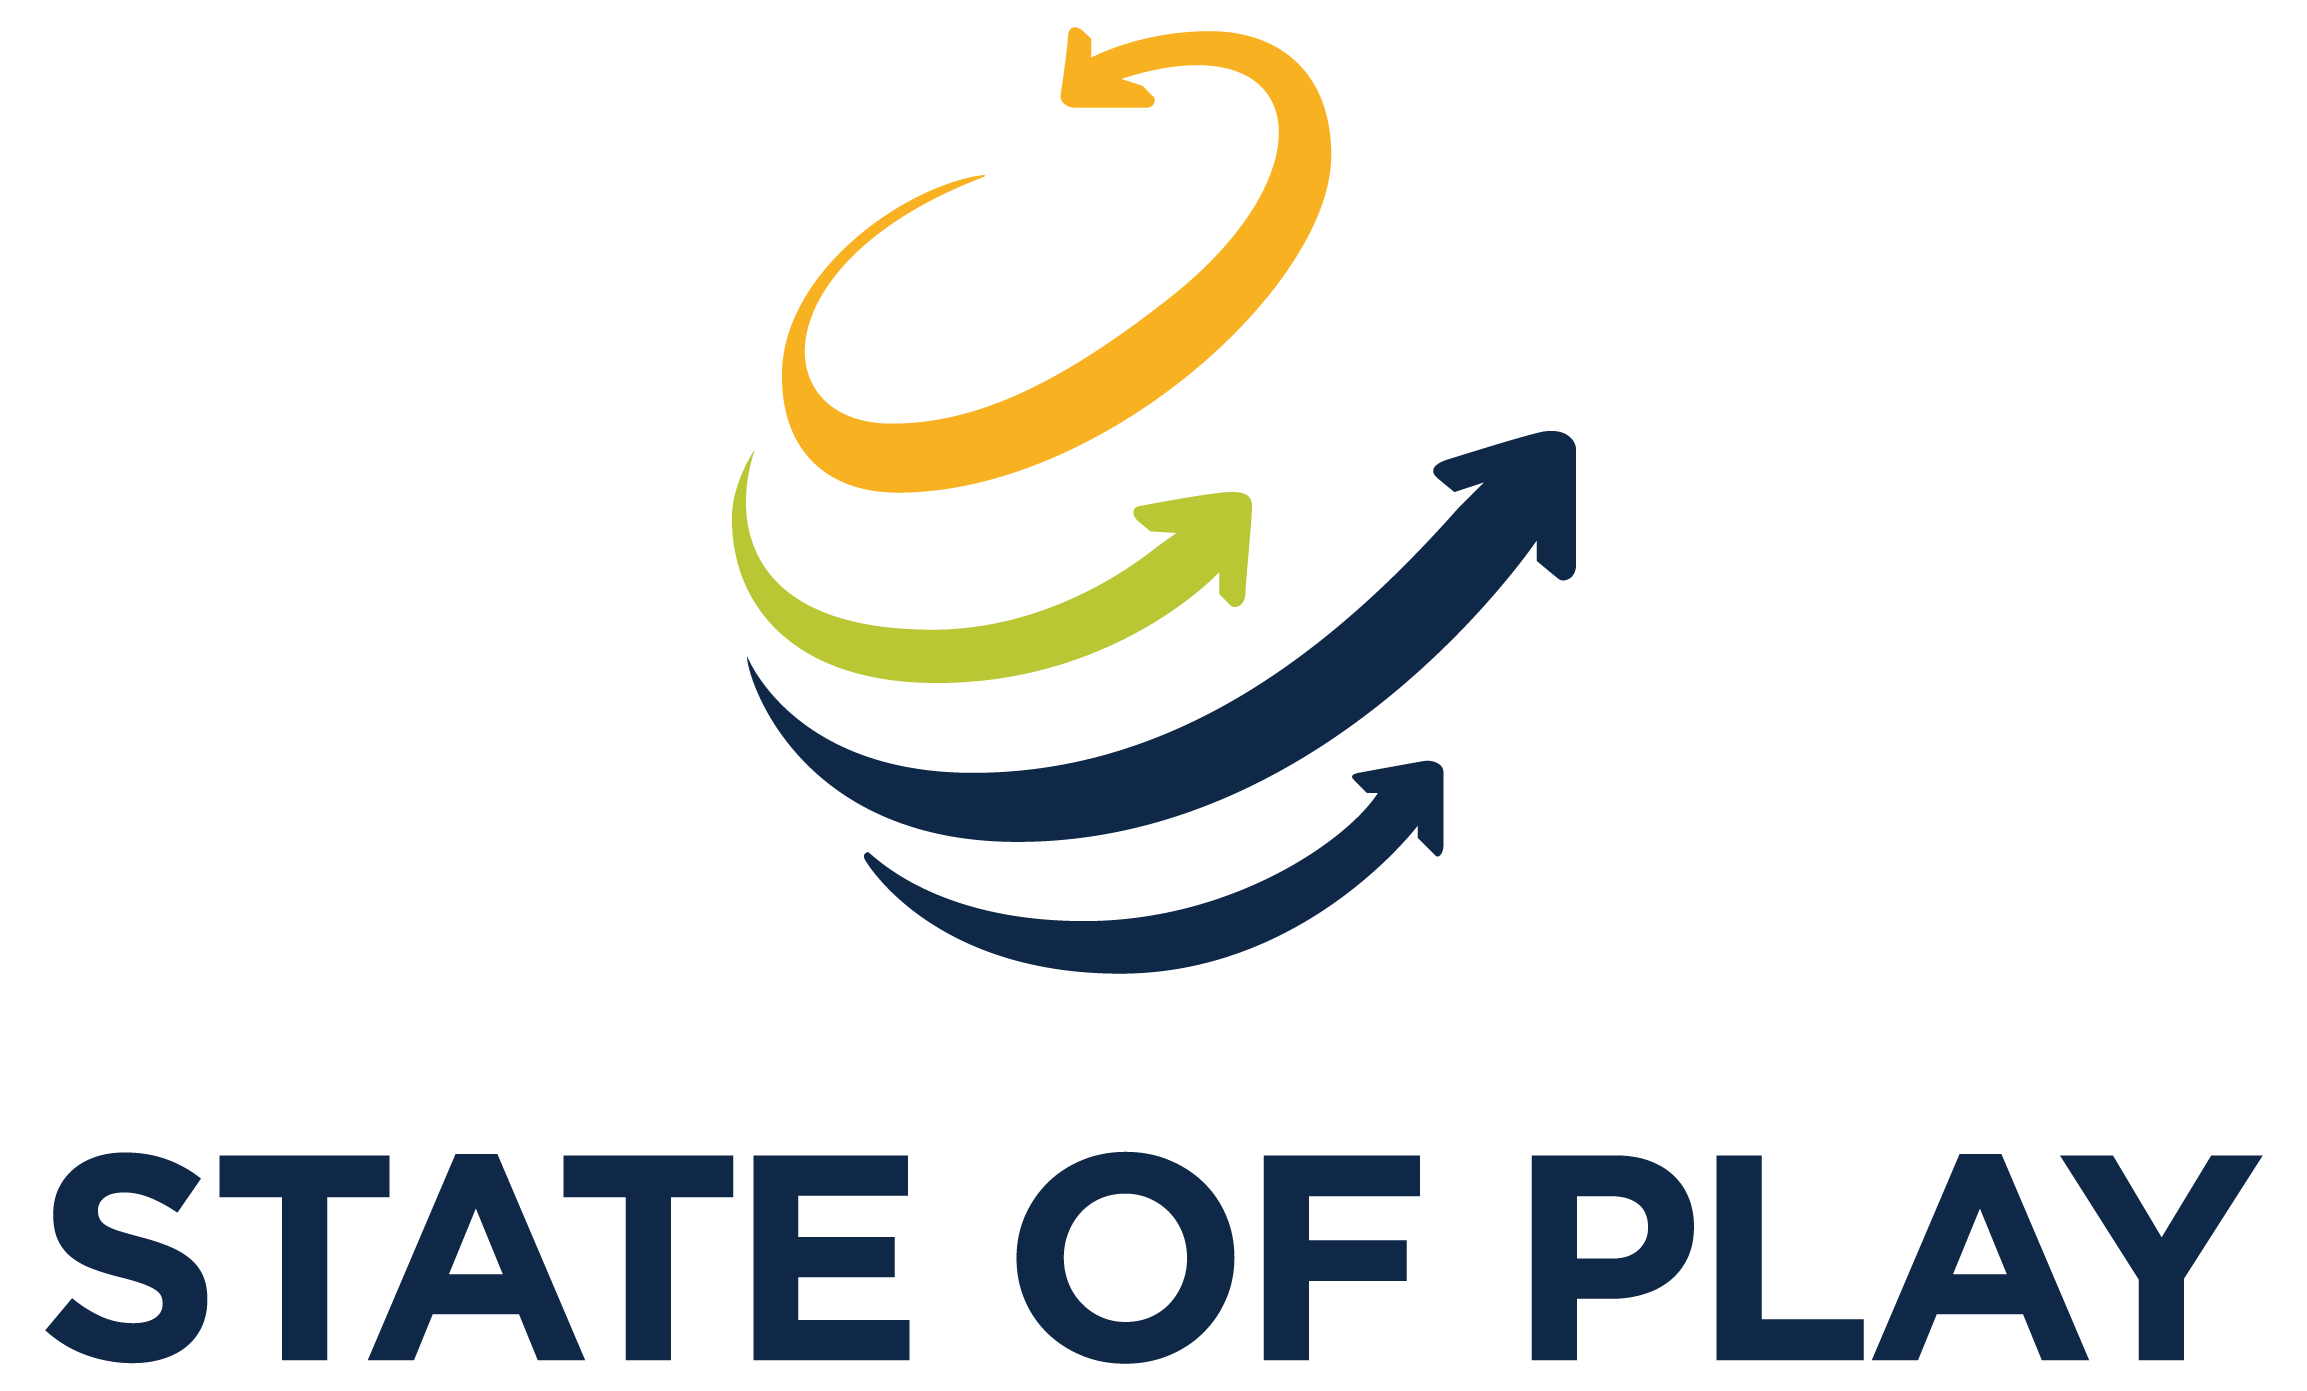 STATE_OF_PLAY_logo2_ver.png